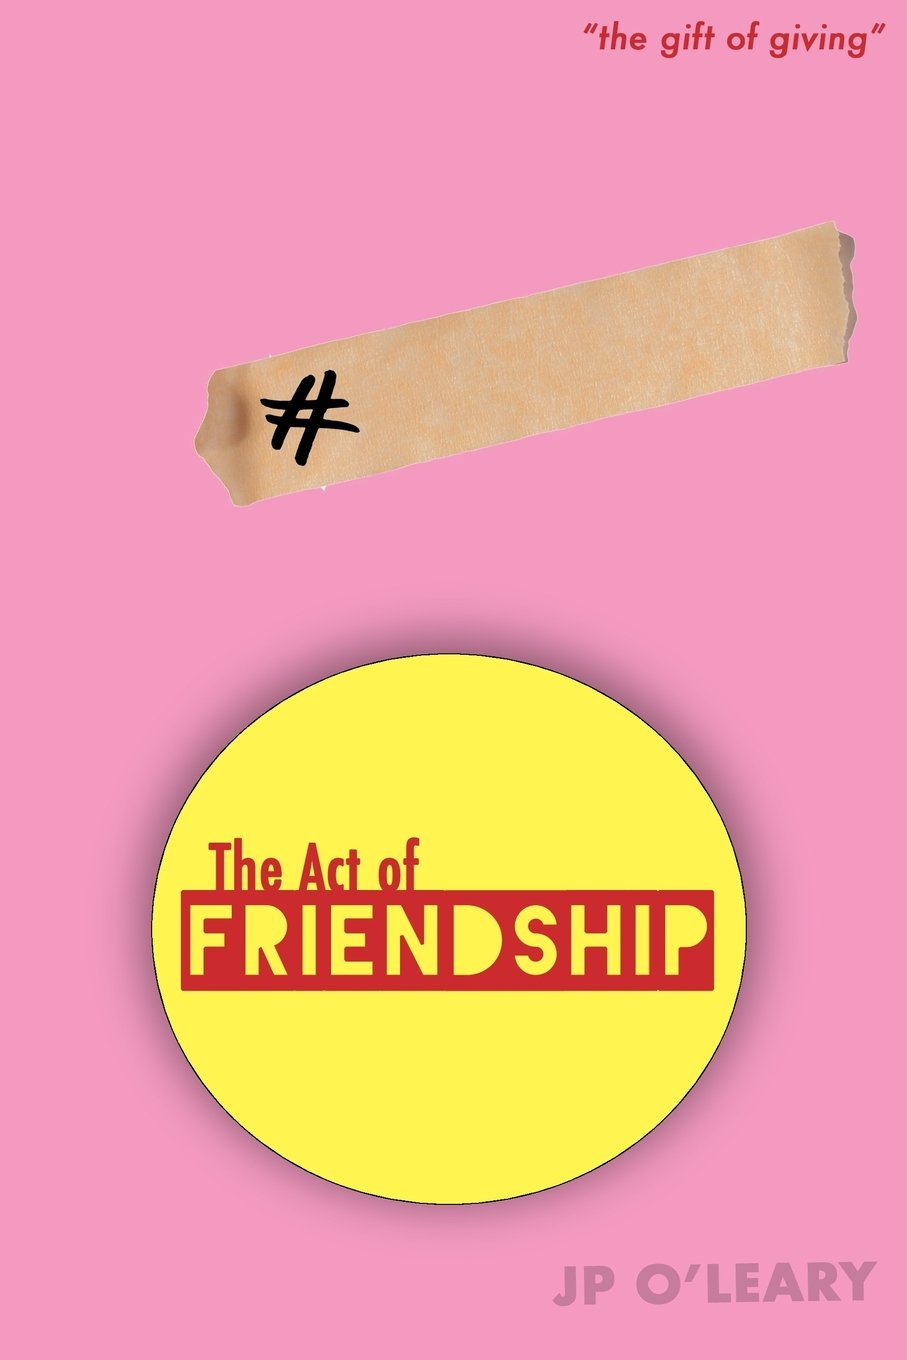 Act Friendship gift giving product image